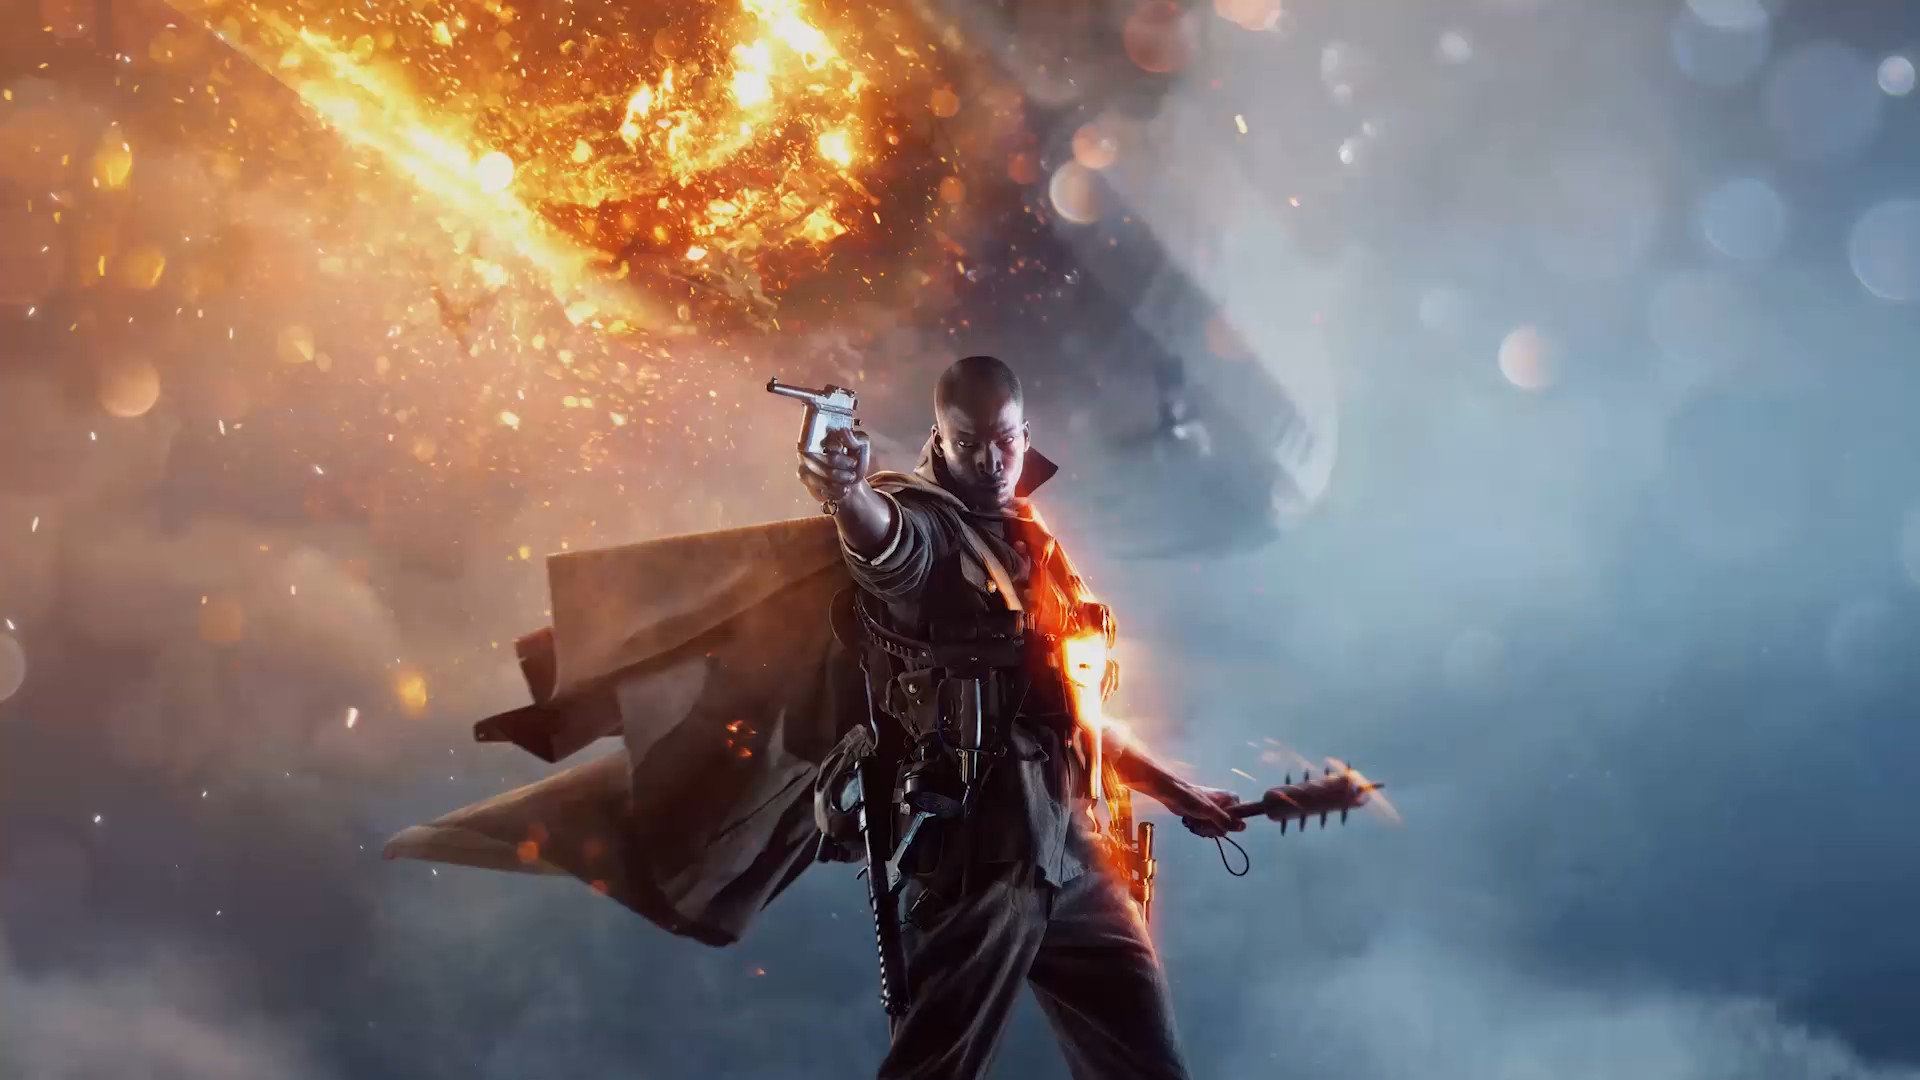 """Battlefield 1"" Trailer Revealed - Set in World War I"